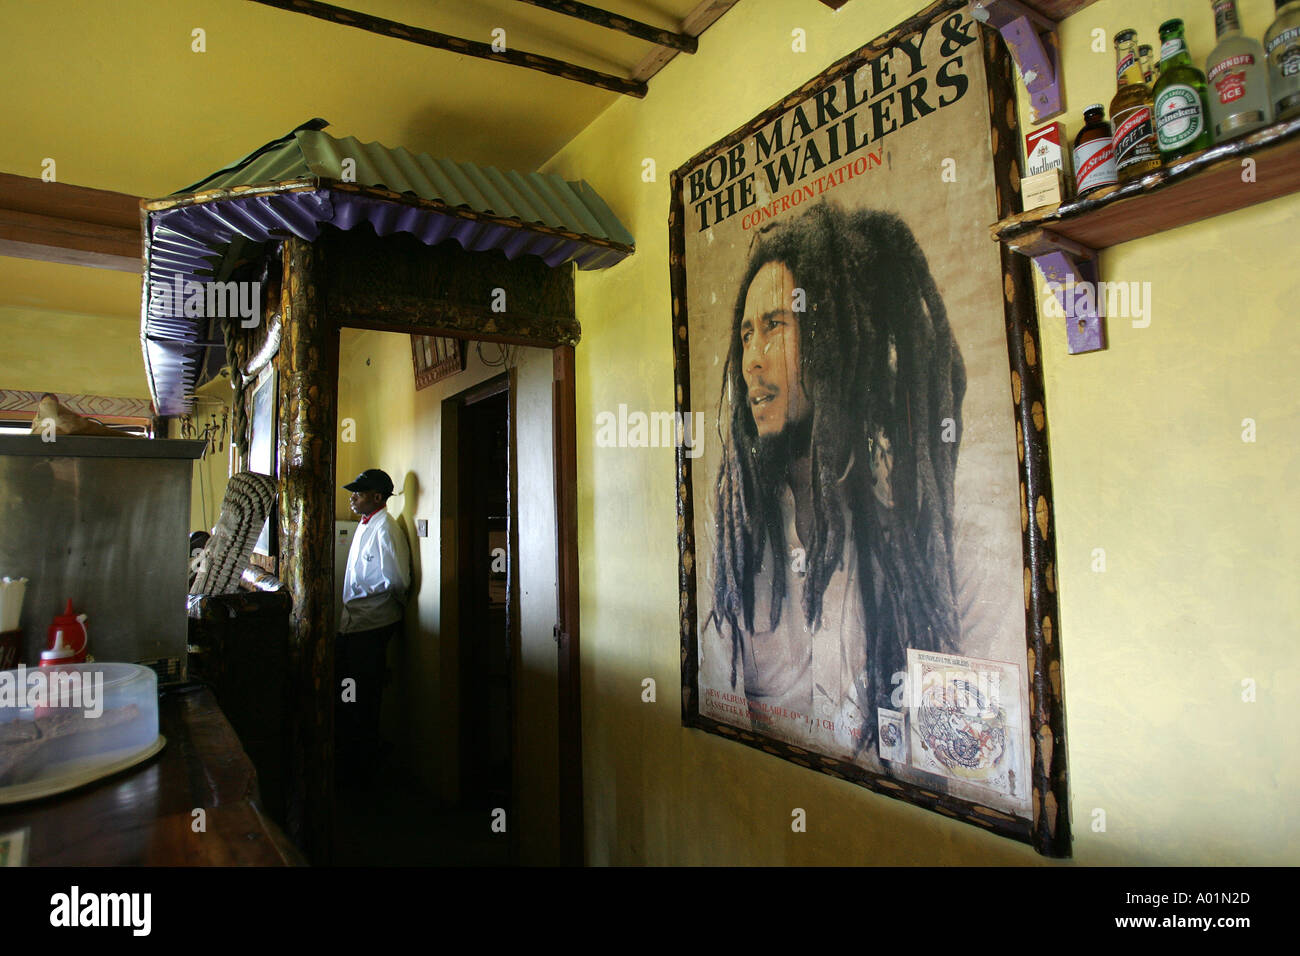 A poster of Bob Marley at the childhood home and gravesite memorial of the famous reggae star - Stock Image